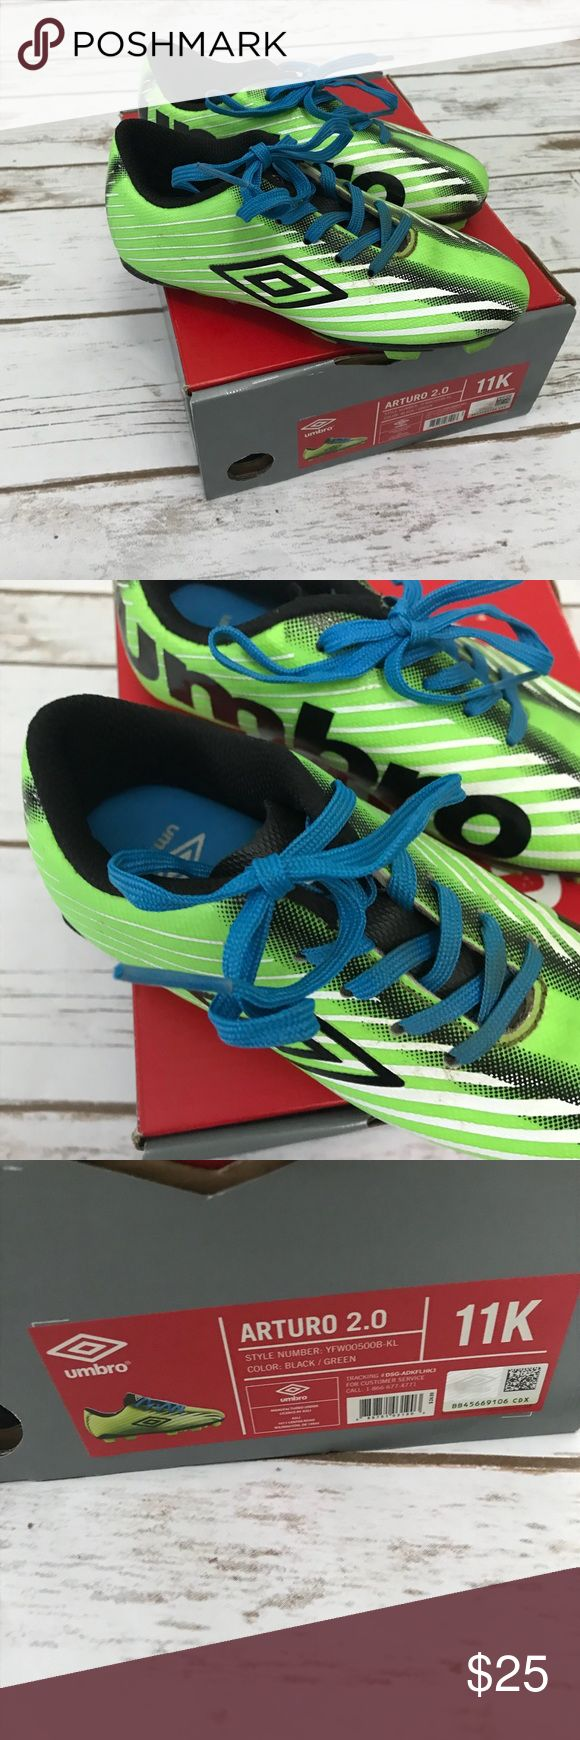 UMBRO [boys] Arturo Green Soccer Cleats with Box Worn a few times for soccer. Has some dirt from the soccer field, I'll try to clean off before shipping. Otherwise really nice condition. Green, black and blue cleats with blue laces. Come with Shoe Box. Size boys 11. Umbro Shoes